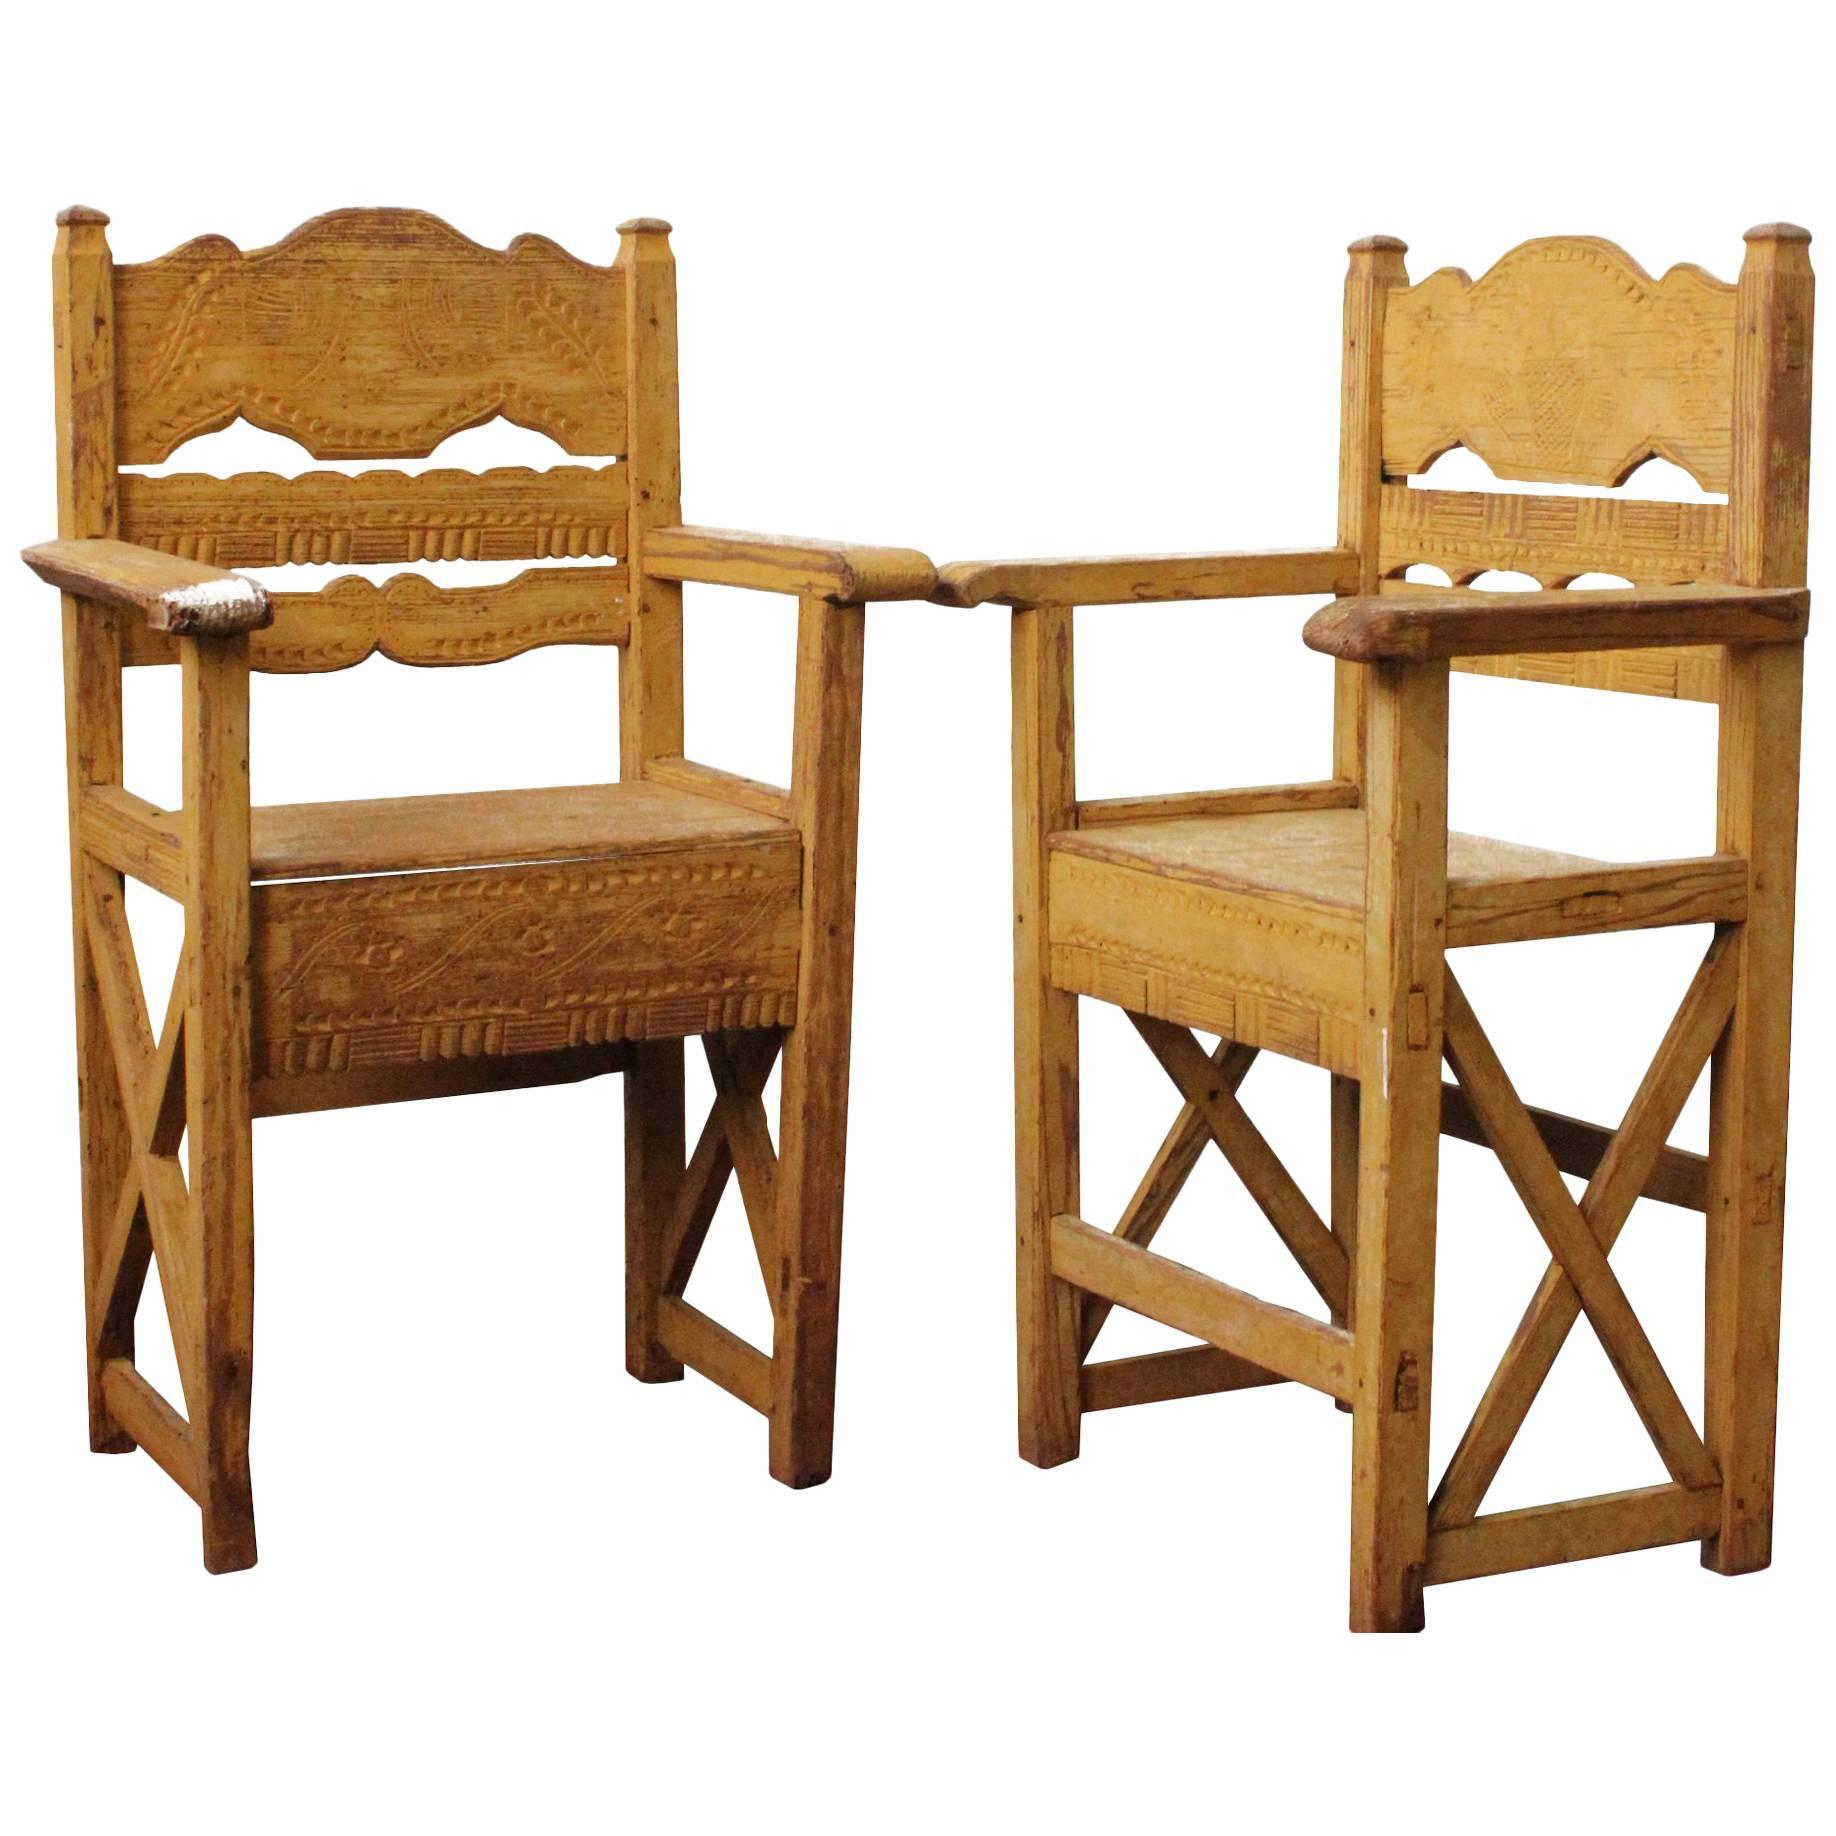 Western Chairs Late 19th Century Set Of Chairs Found In Western Mexico